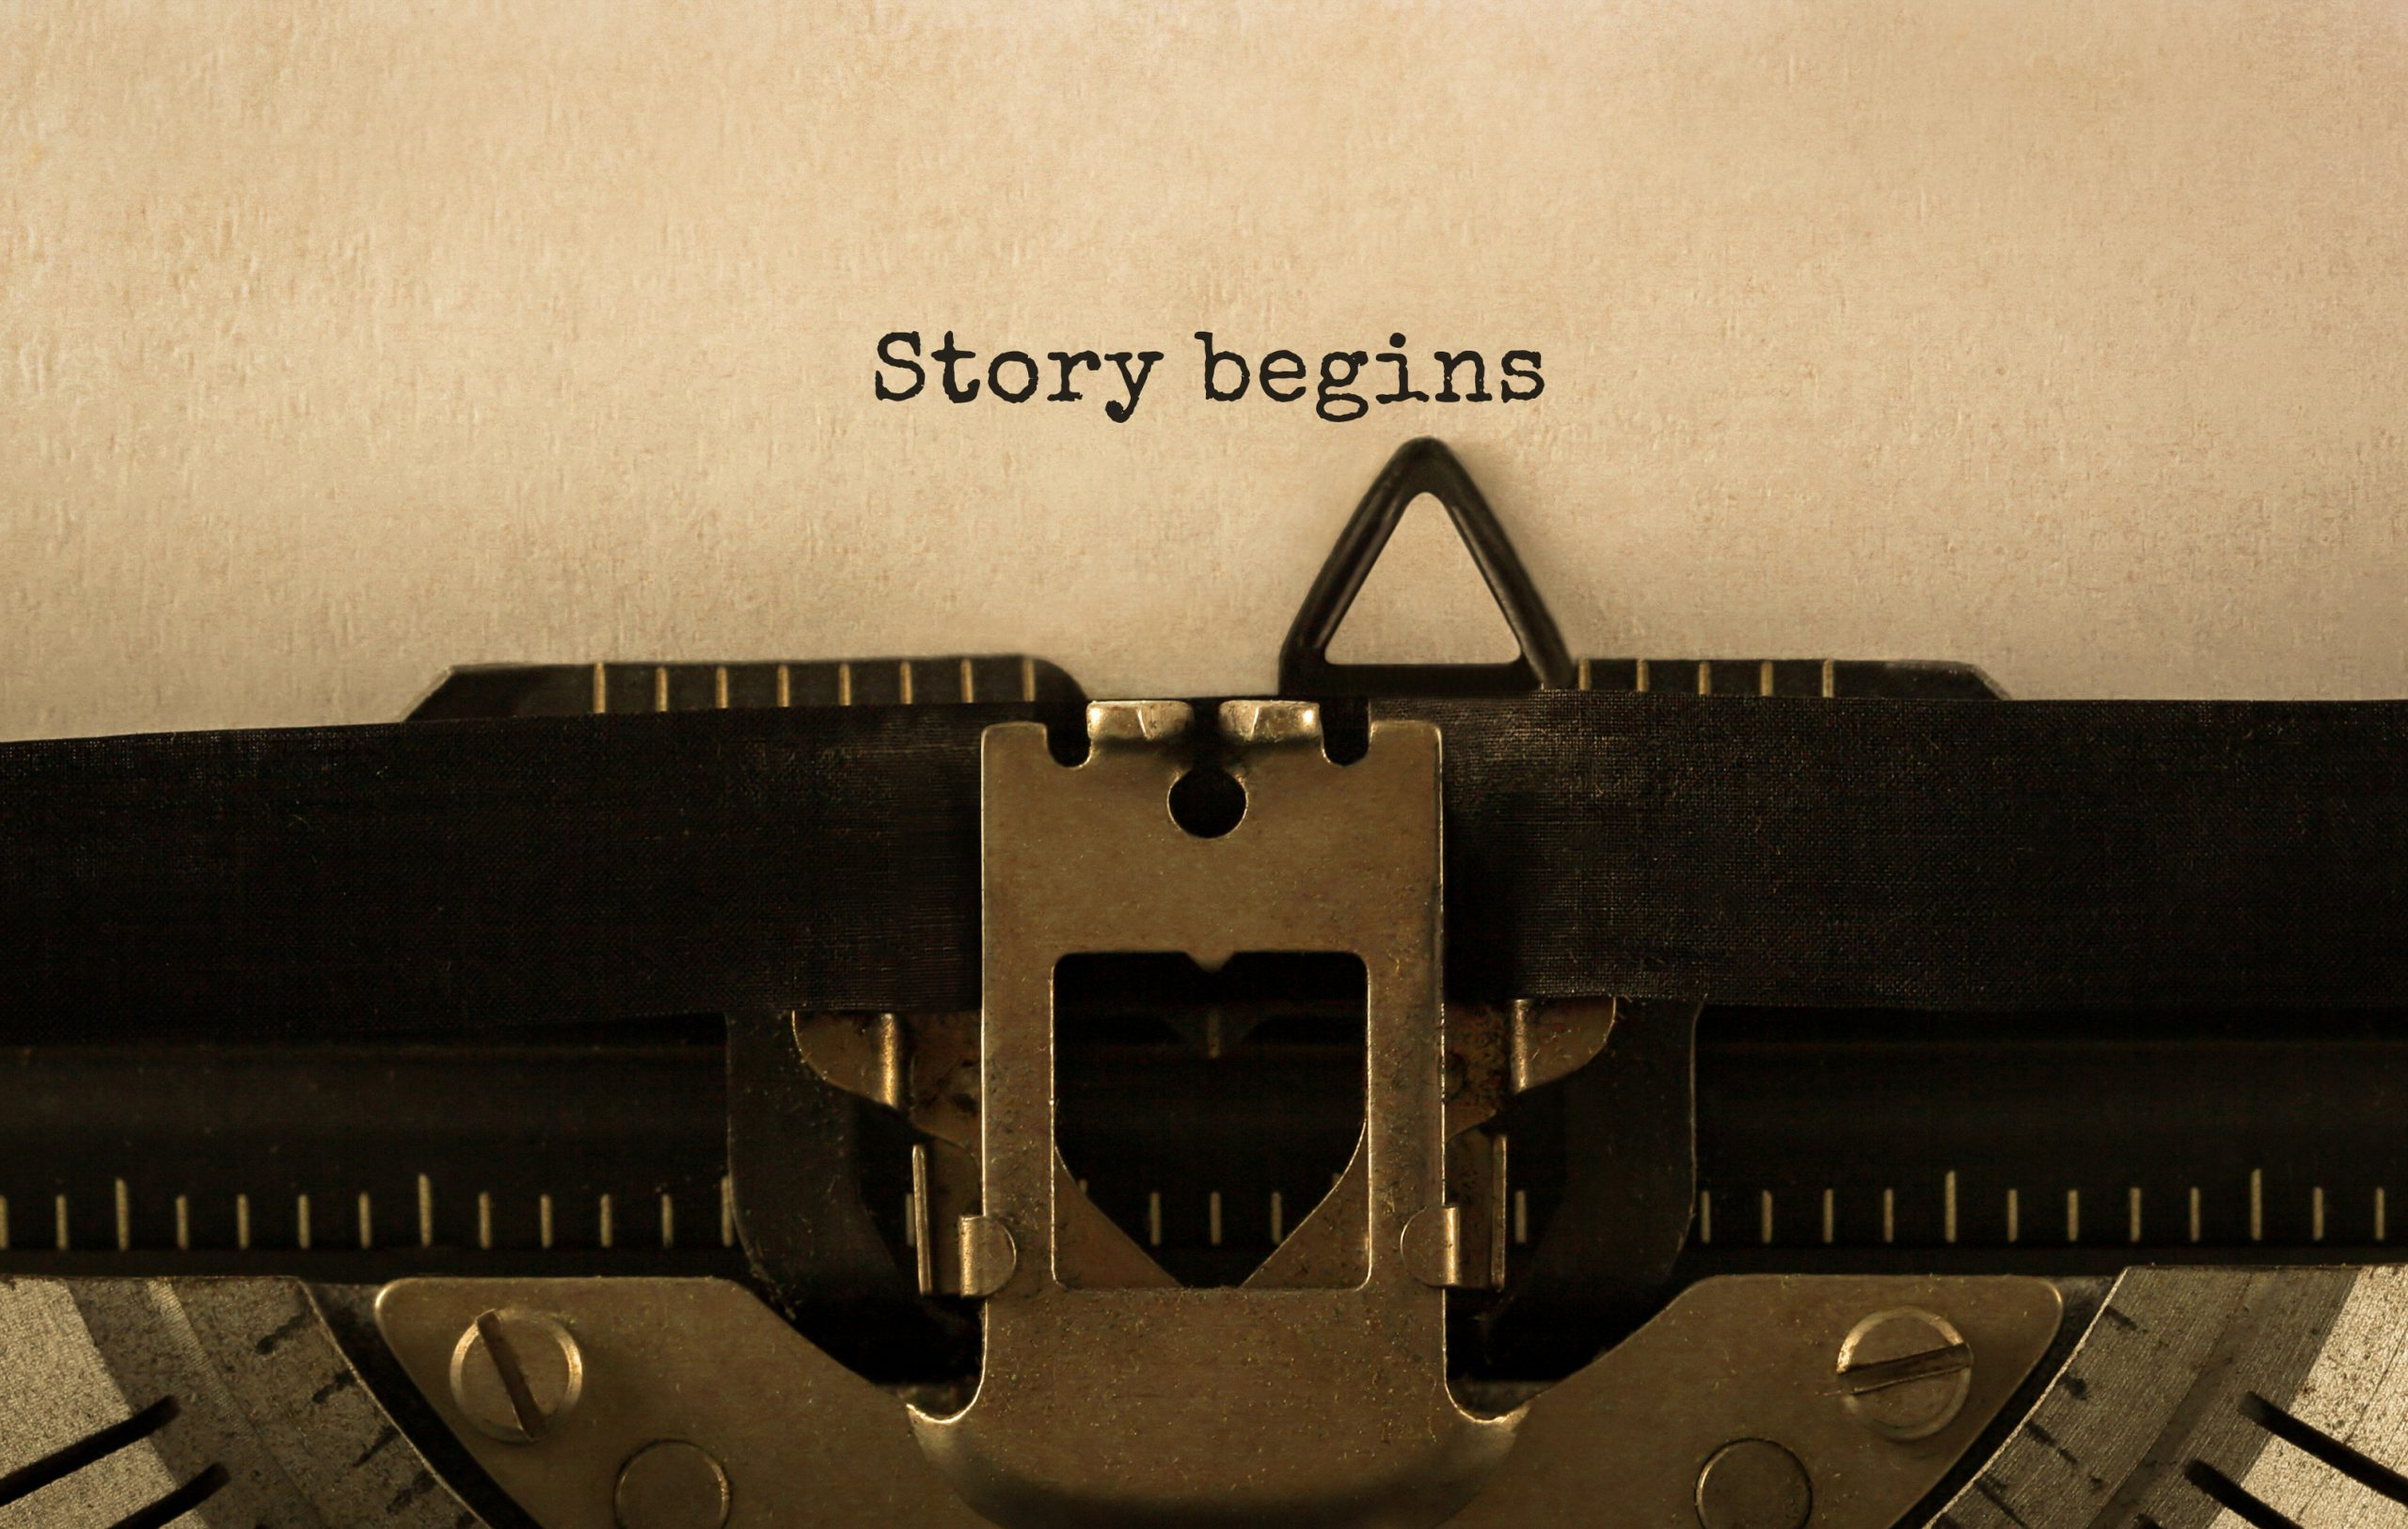 Your Story Can Start At Any Time